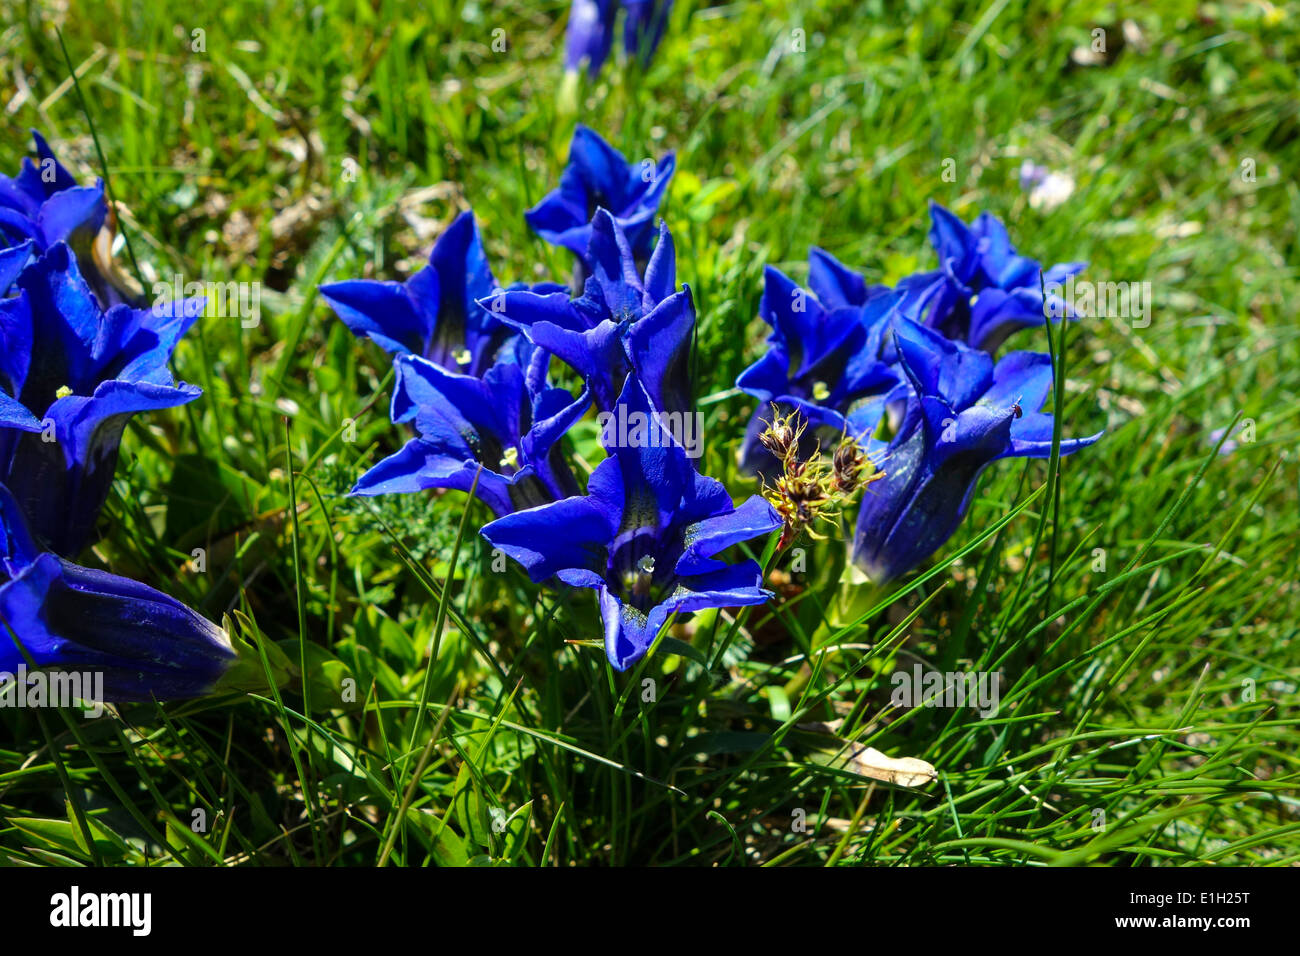 Blue gentians growing on green grassy slope, Gentiana - Stock Image